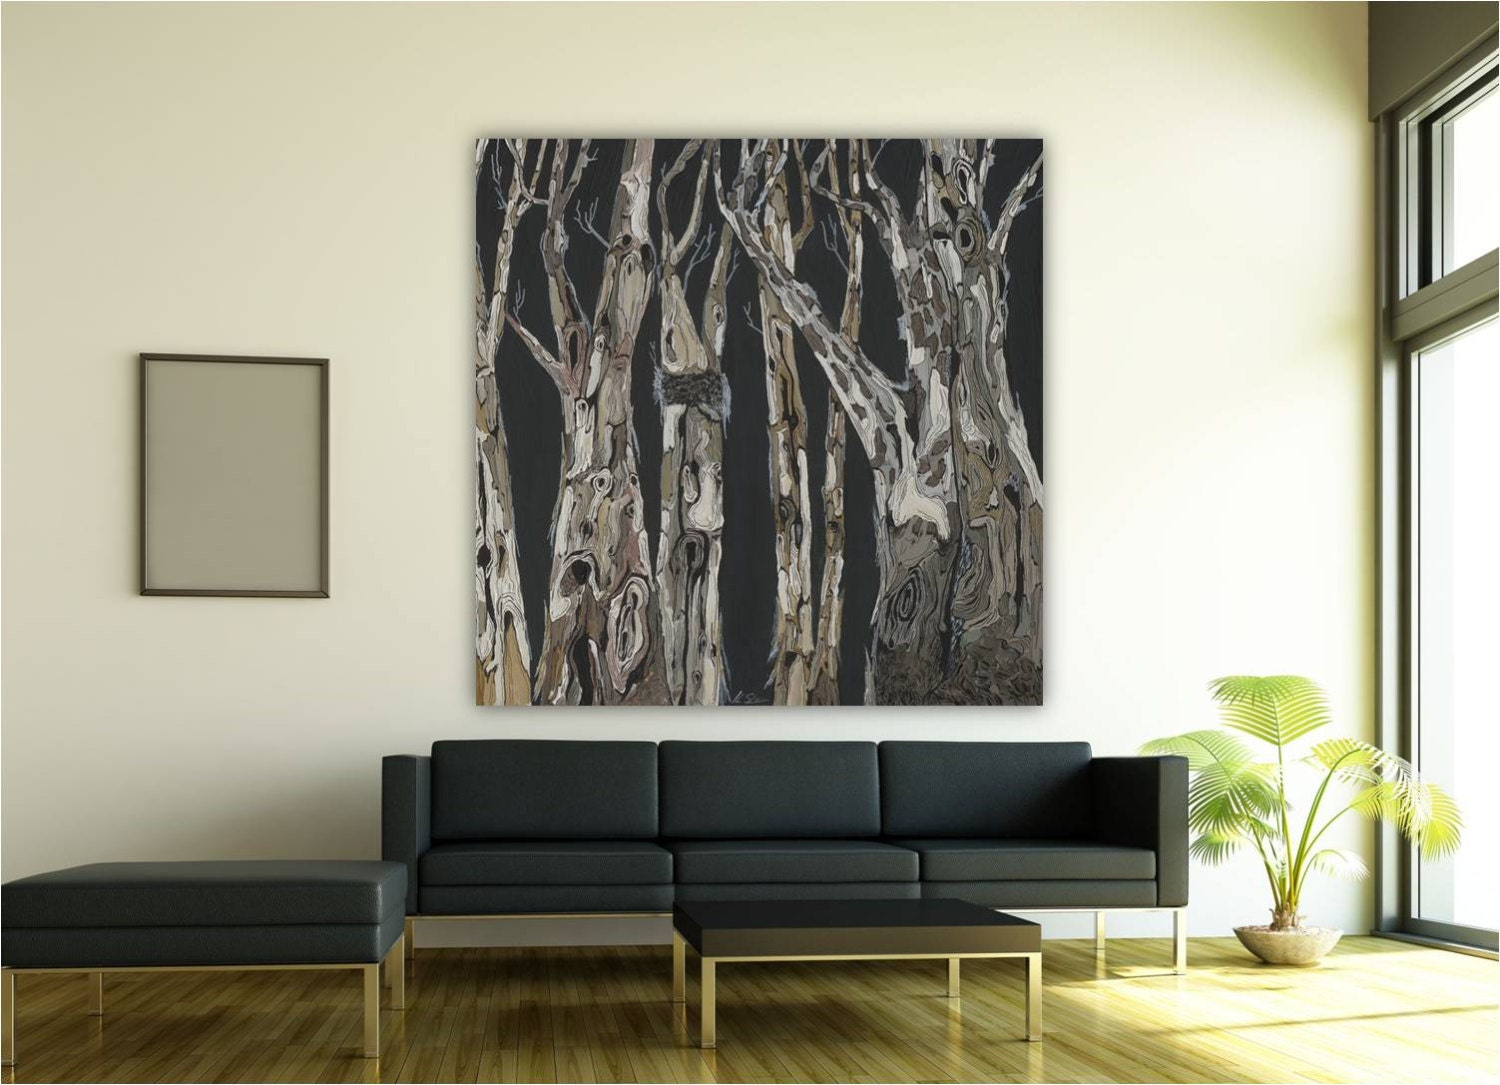 Wall art extra large modern artwork dining room tree art black for Modern dining room wall art